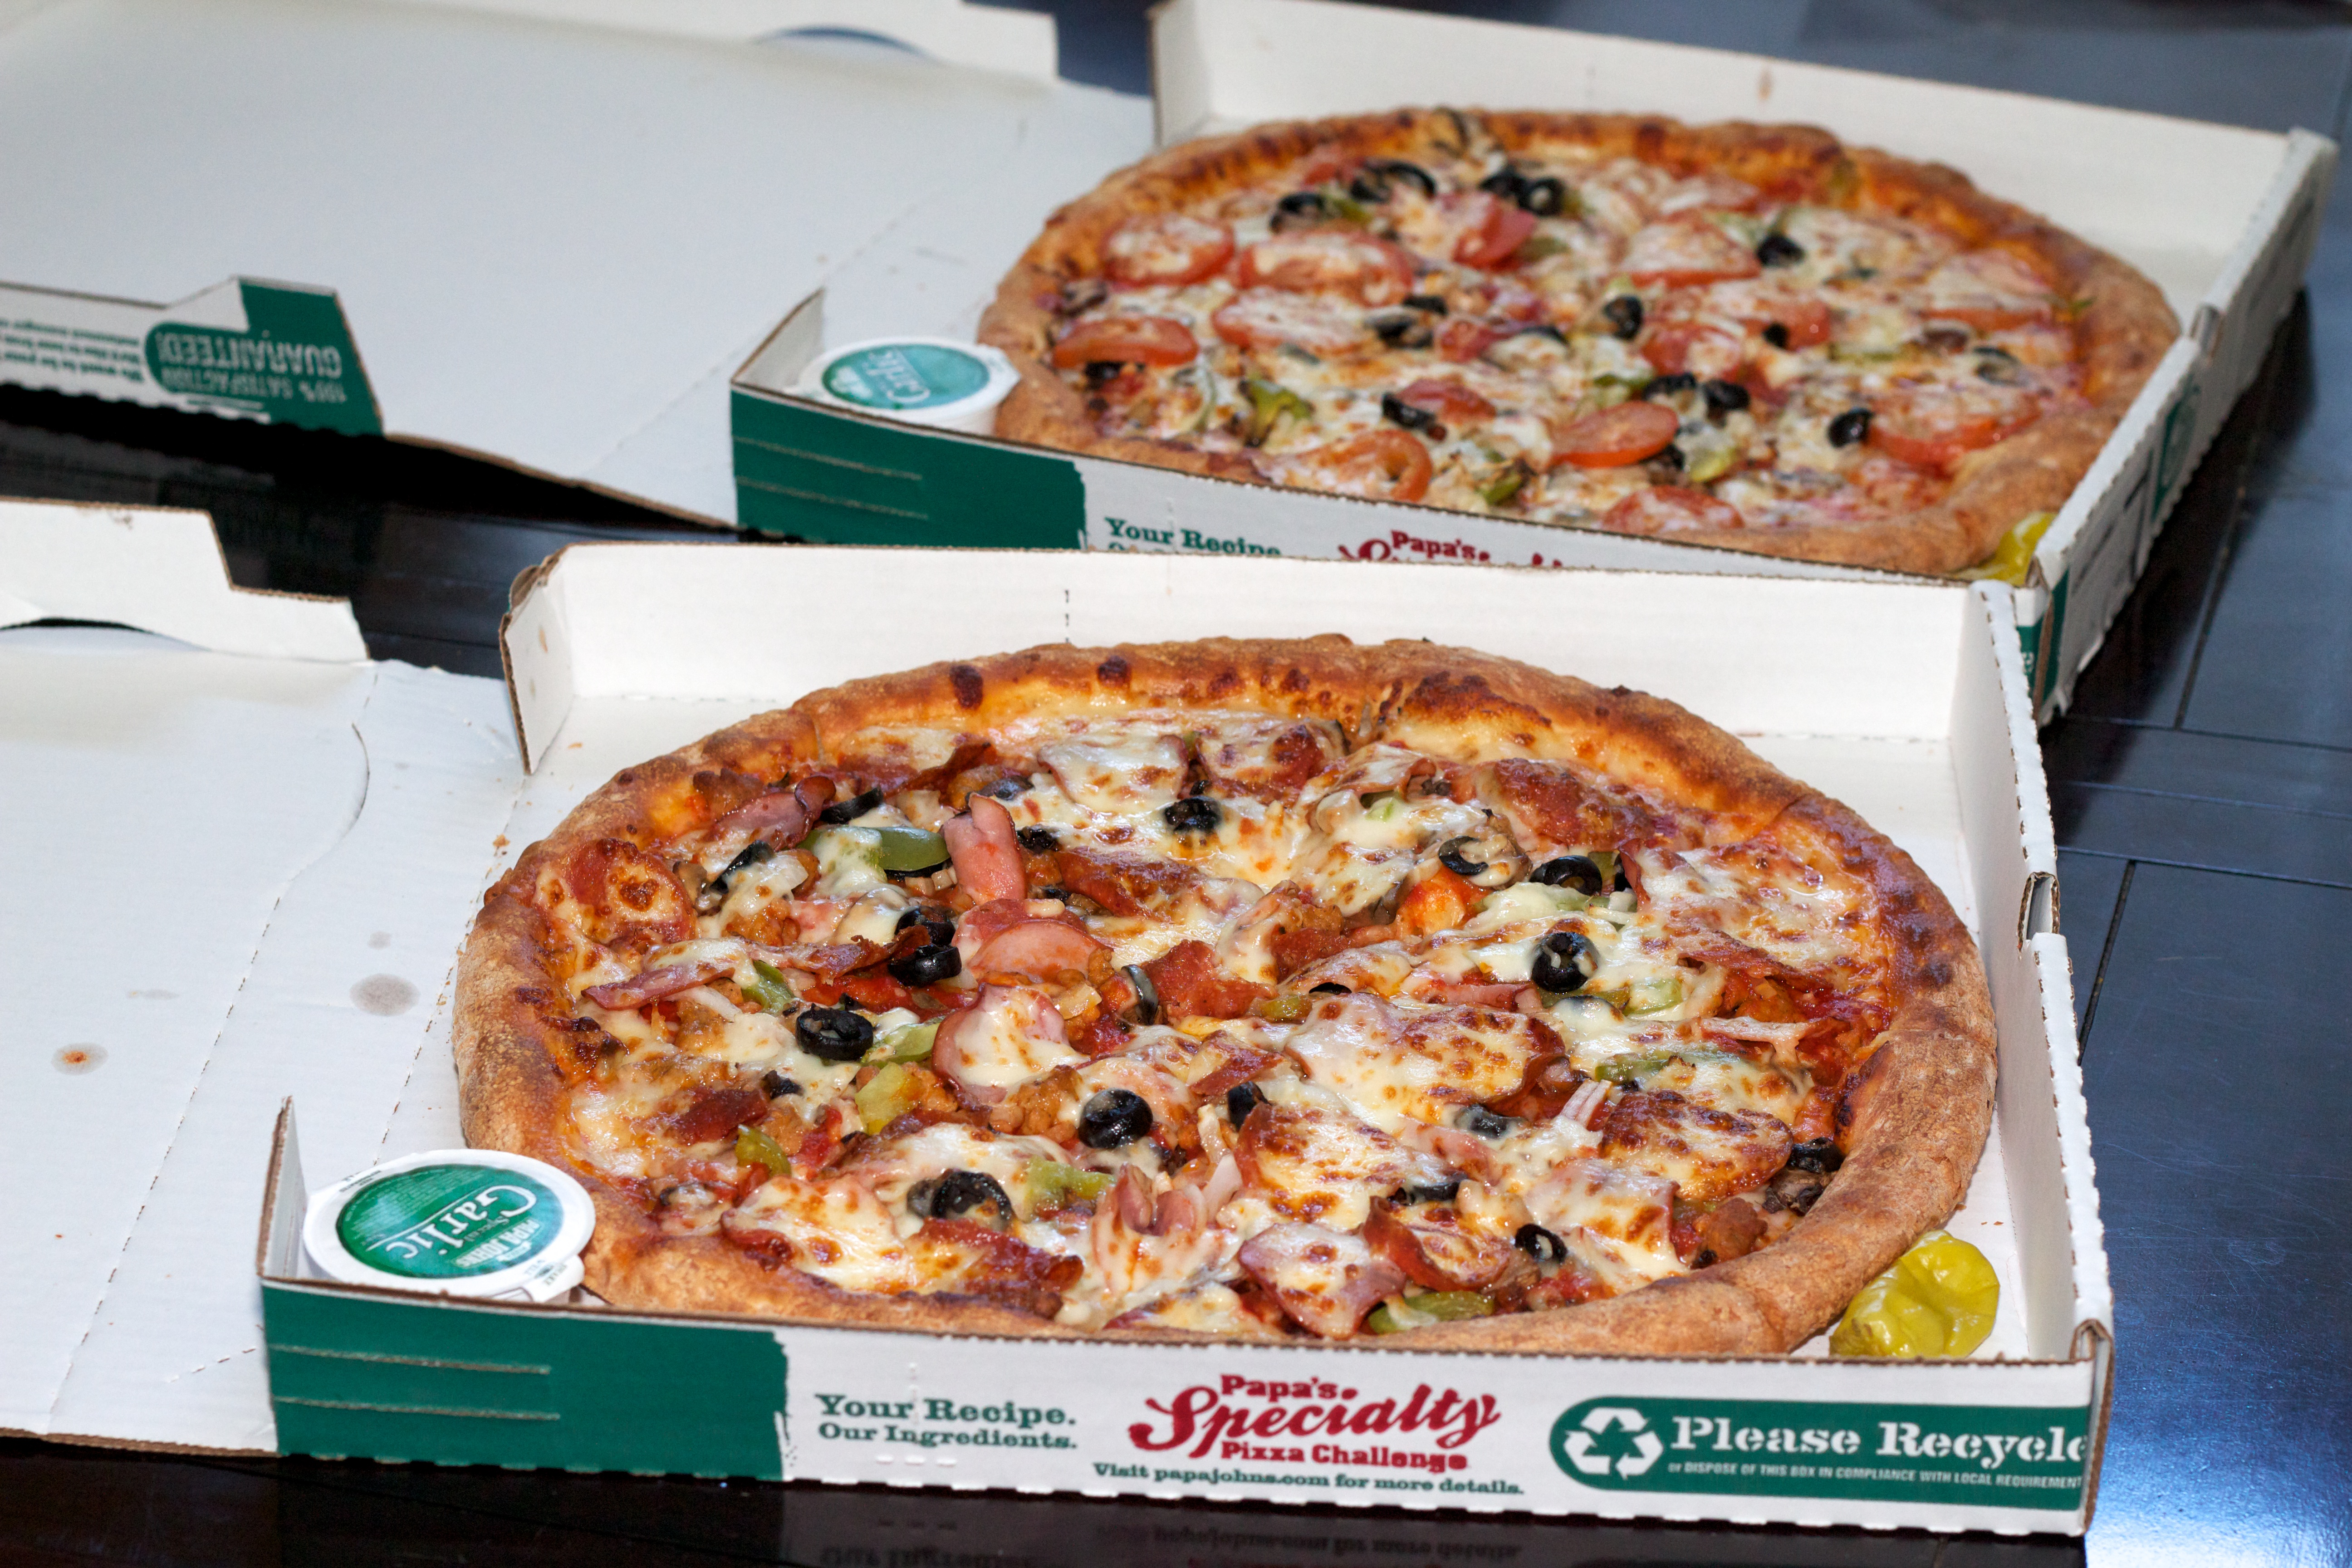 Laszlo Hanyecz posts proof of pizzas he received for 10k BTC